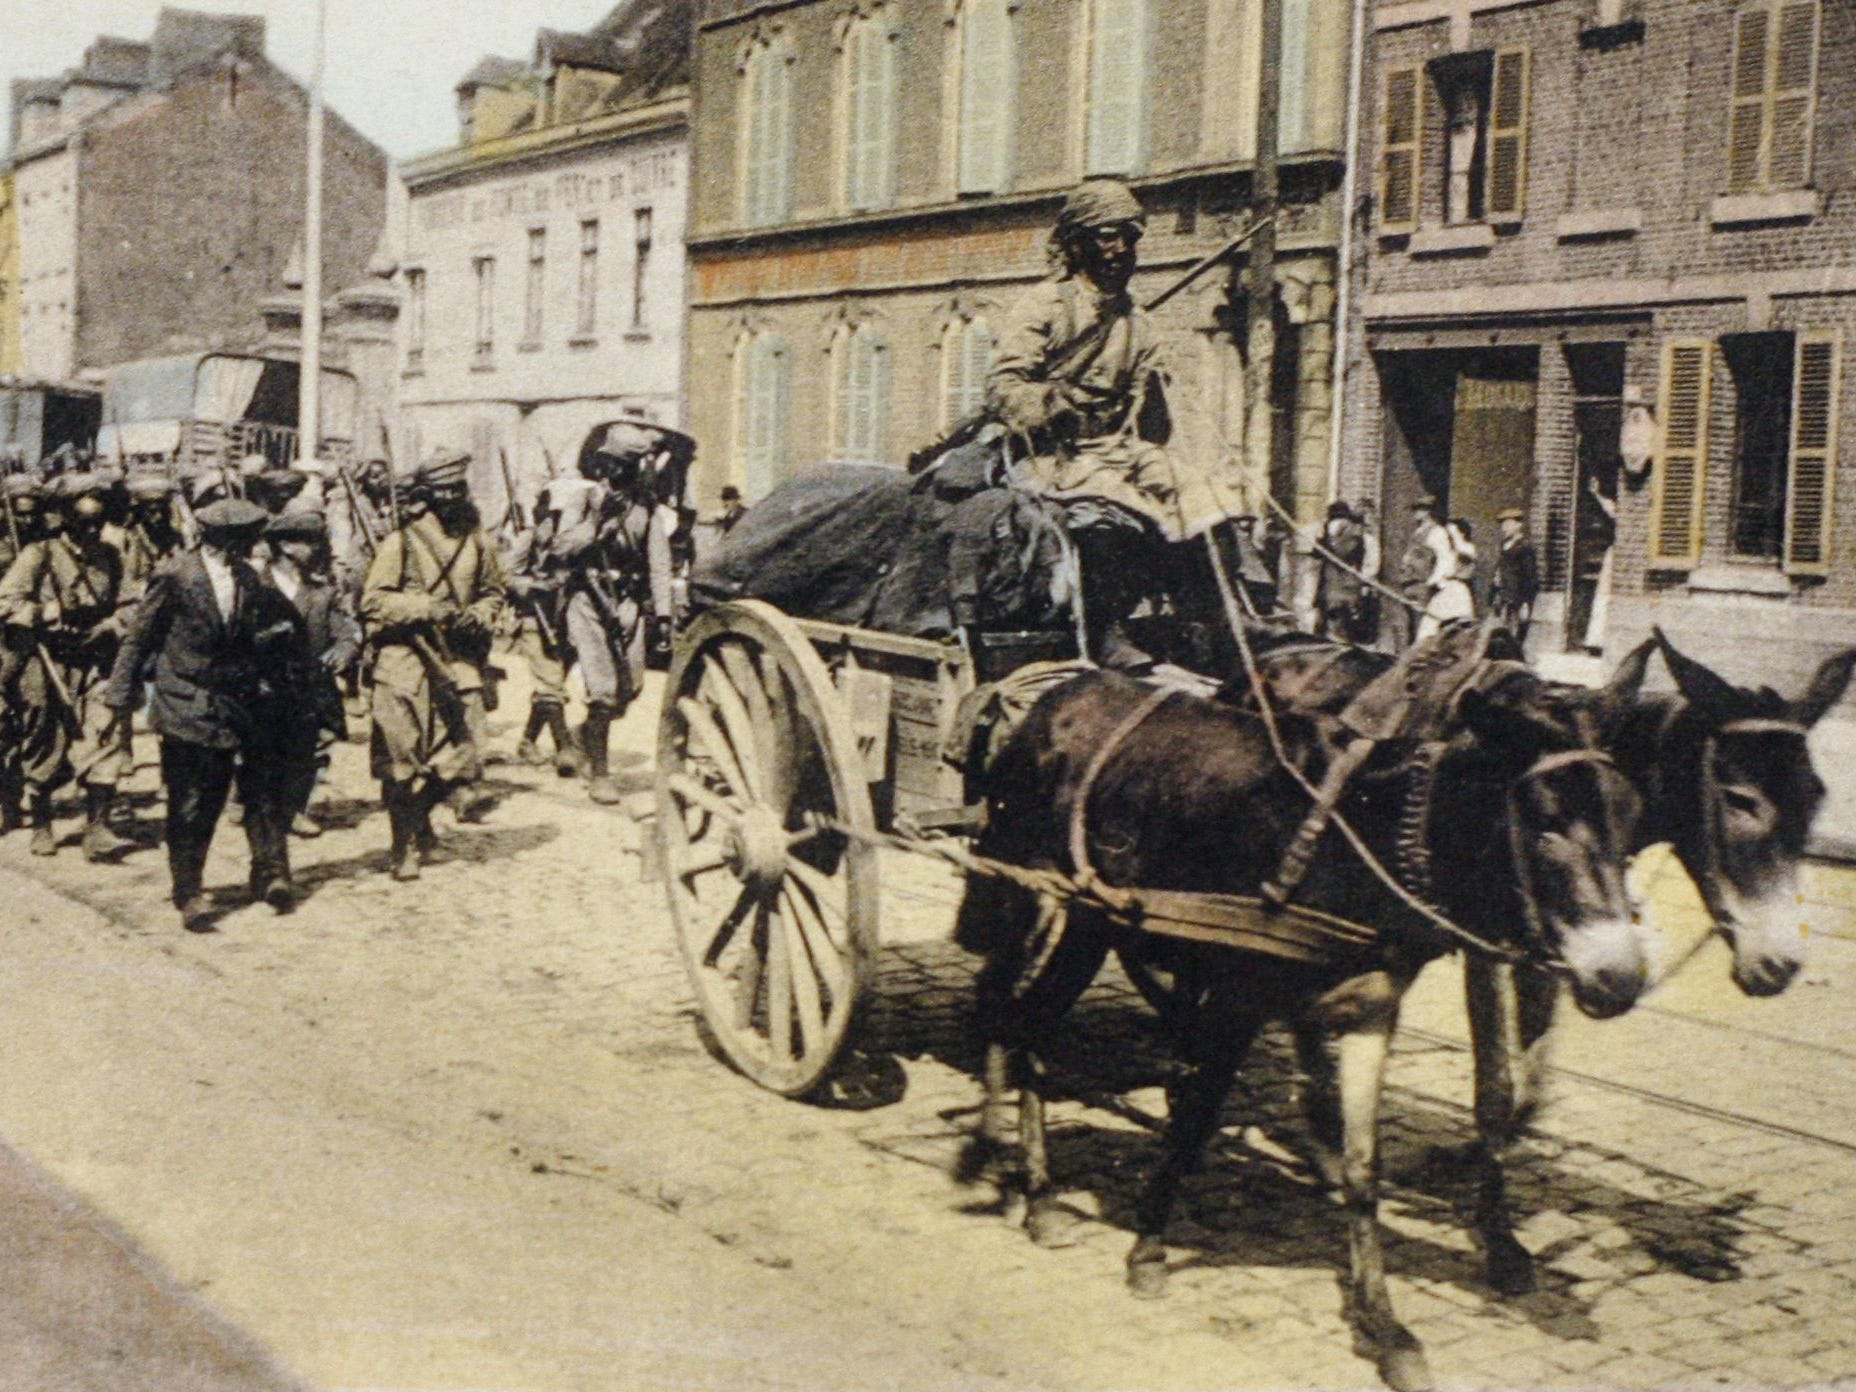 A photo of a postcard released by the Historial de Peronne (WWI Museum) of African troops from the French colonies in the streets of Amiens in 1914 before the Battle of the Somme during the World War I.